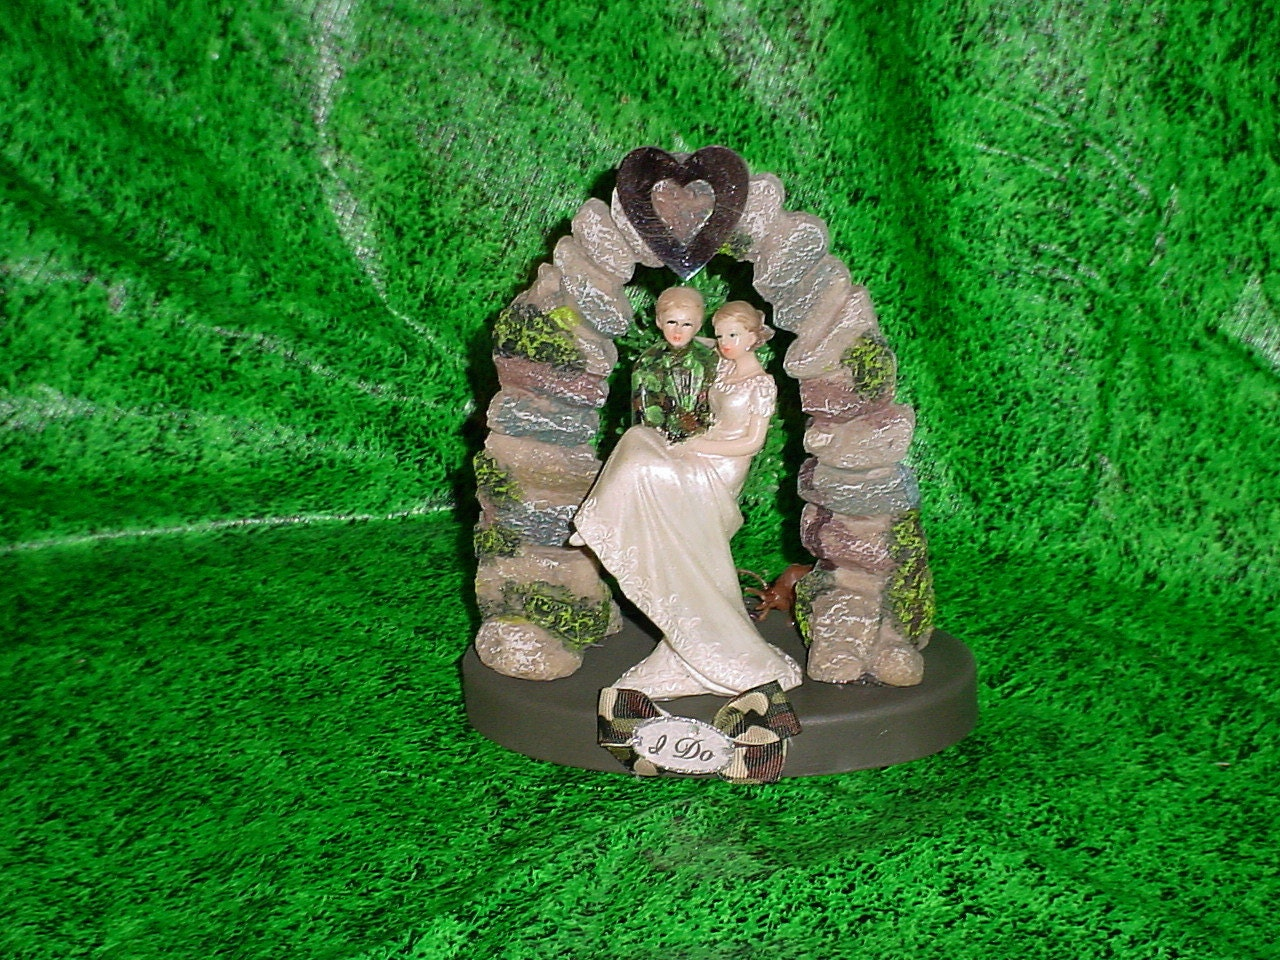 Redneck Outdoor Deer Hunting Mossy Camo Hunter Groom Fun